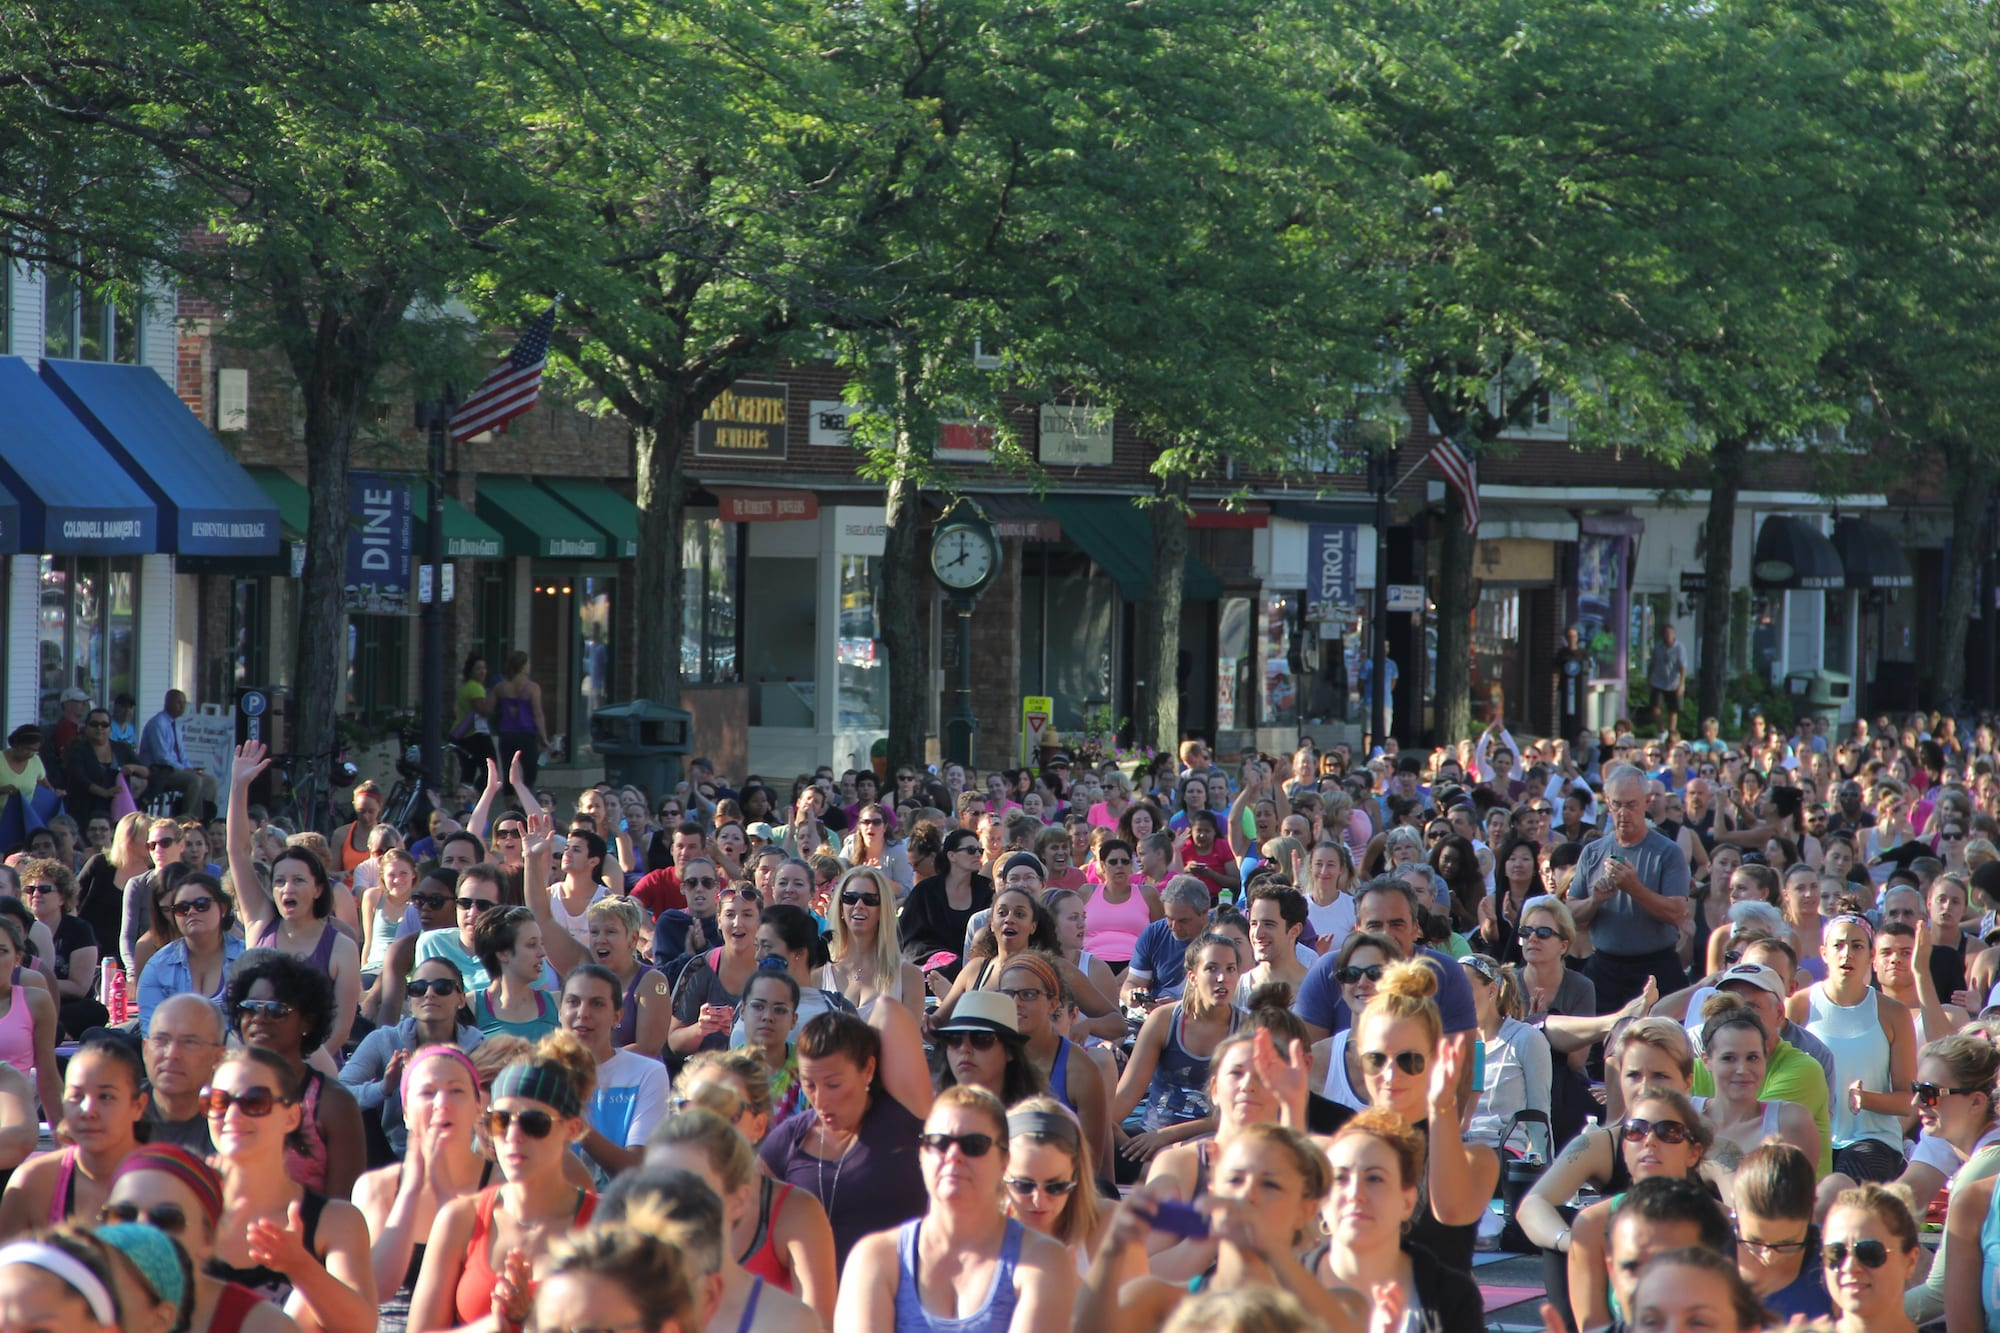 Om Street 2015, presented by West Hartford Yoga on LaSalle Road, July 25, 2015. Class is just about to begin, (notice the time on the Rolex clock). Photo by Amy Melvin